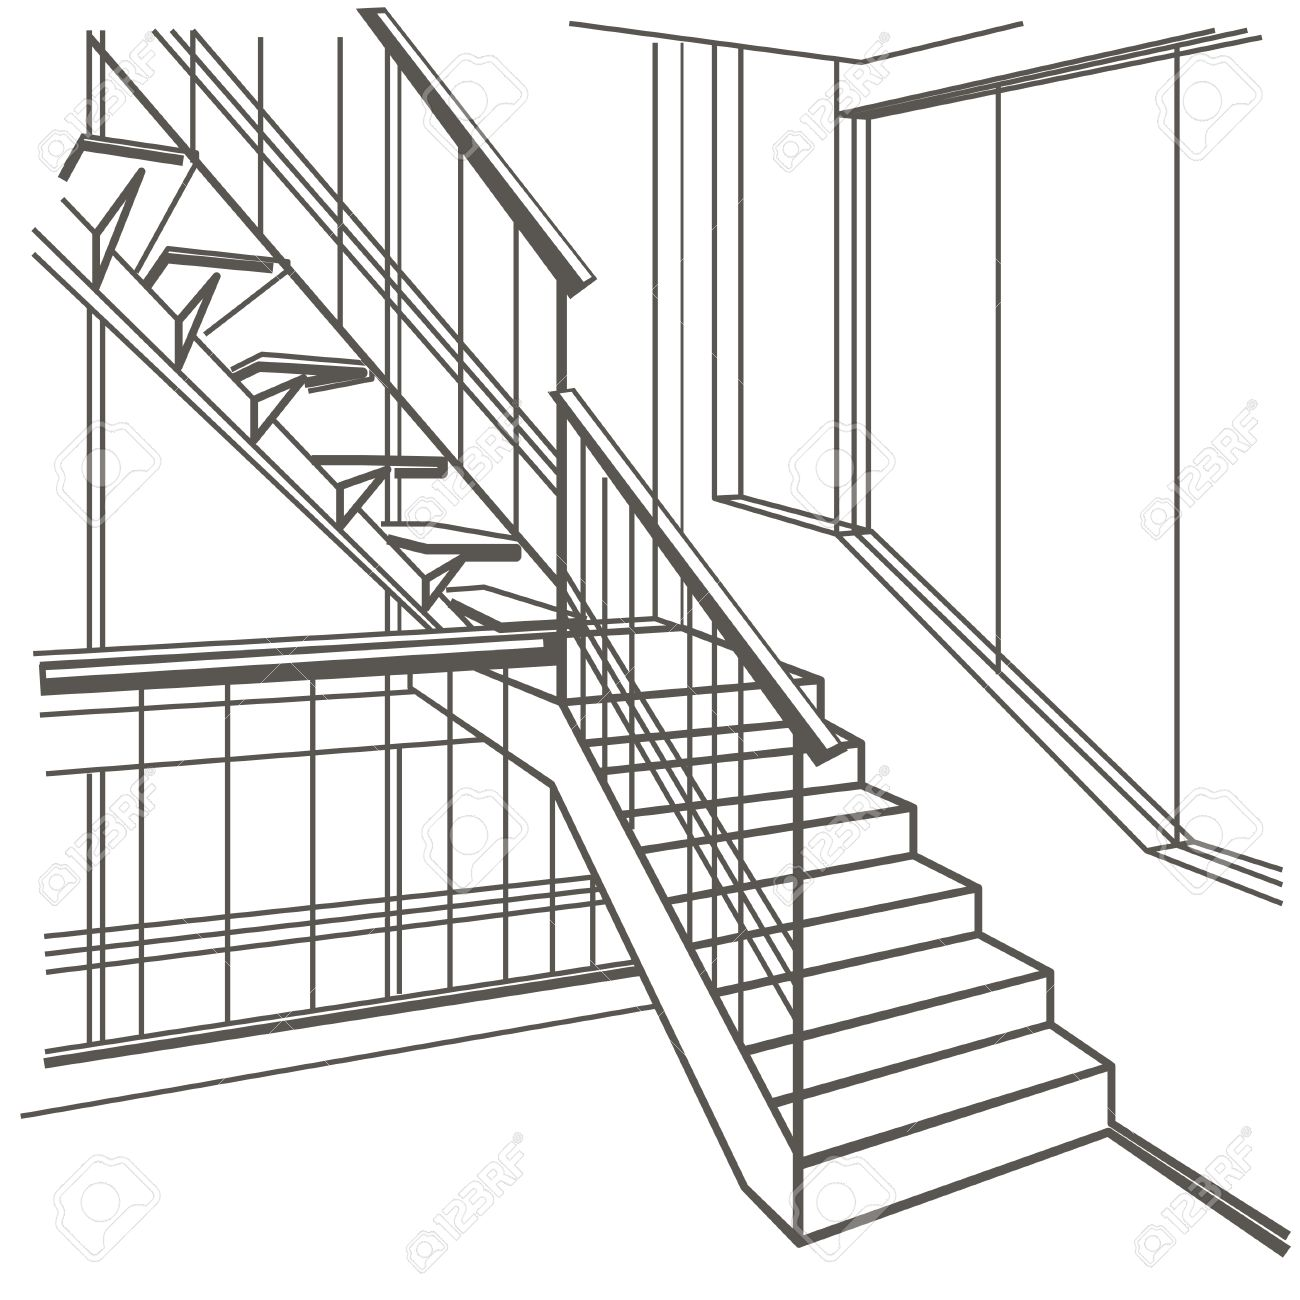 1300x1300 Linear Architectural Sketch Interior Stairs On White Background